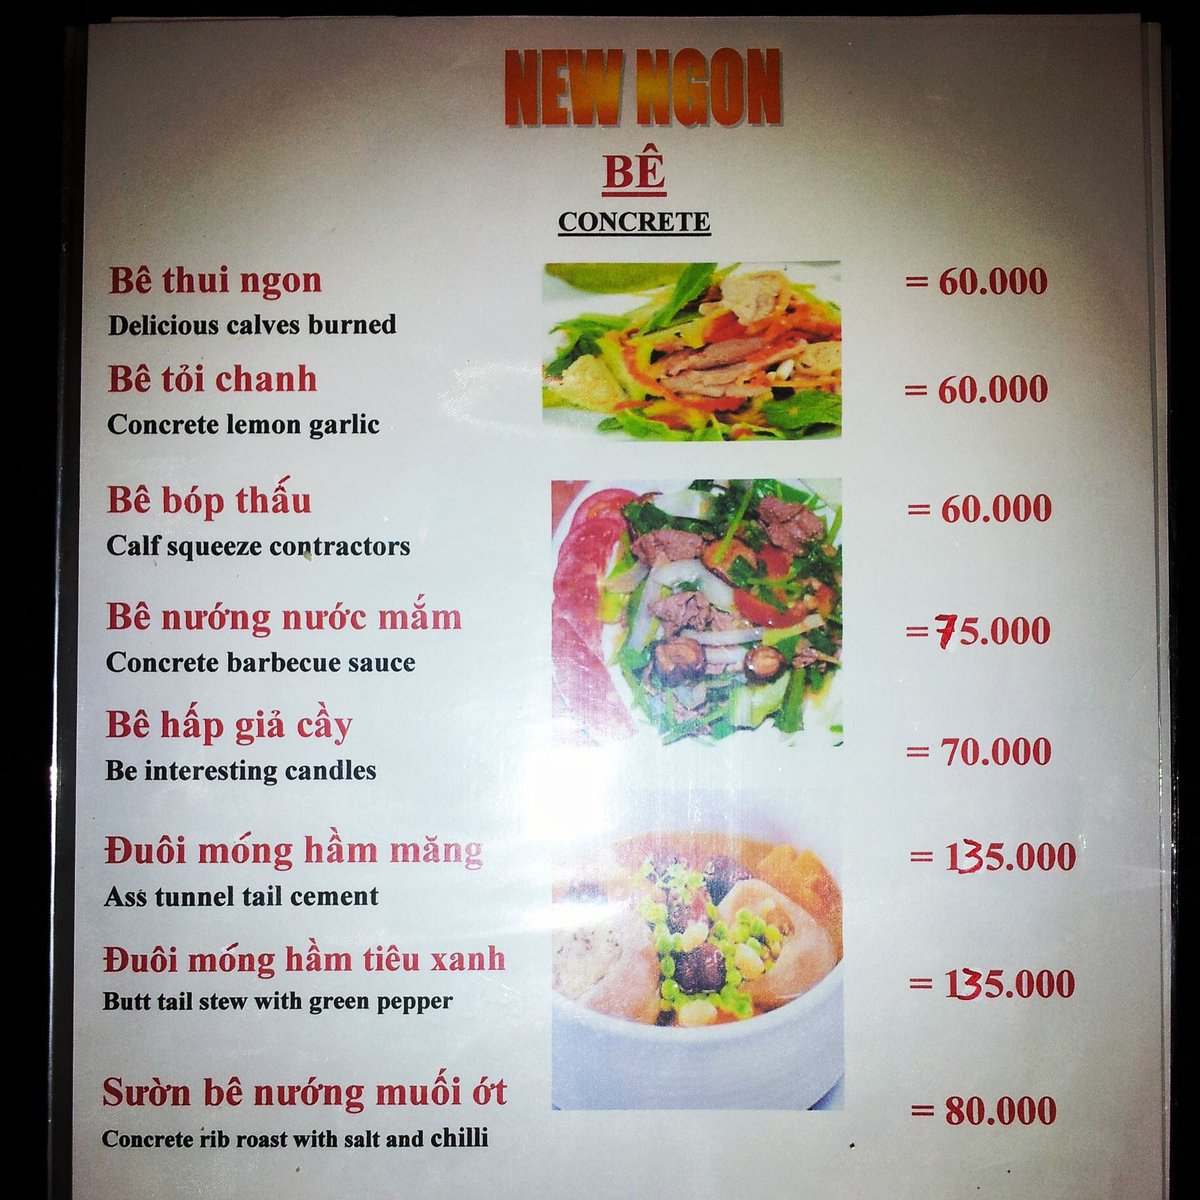 test Twitter Media - Hanoi menu: Tweet by Dan Okrent: Menu translation, Hanoi https://t.co/VgtJWTkOuU — Dan Okrent (@okrent) November 12, 2018 I can't solve all the Vinglish mistranslations on this page, but the one at the very top, which serves as the heading for this… https://t.co/hZ4xxHpf32